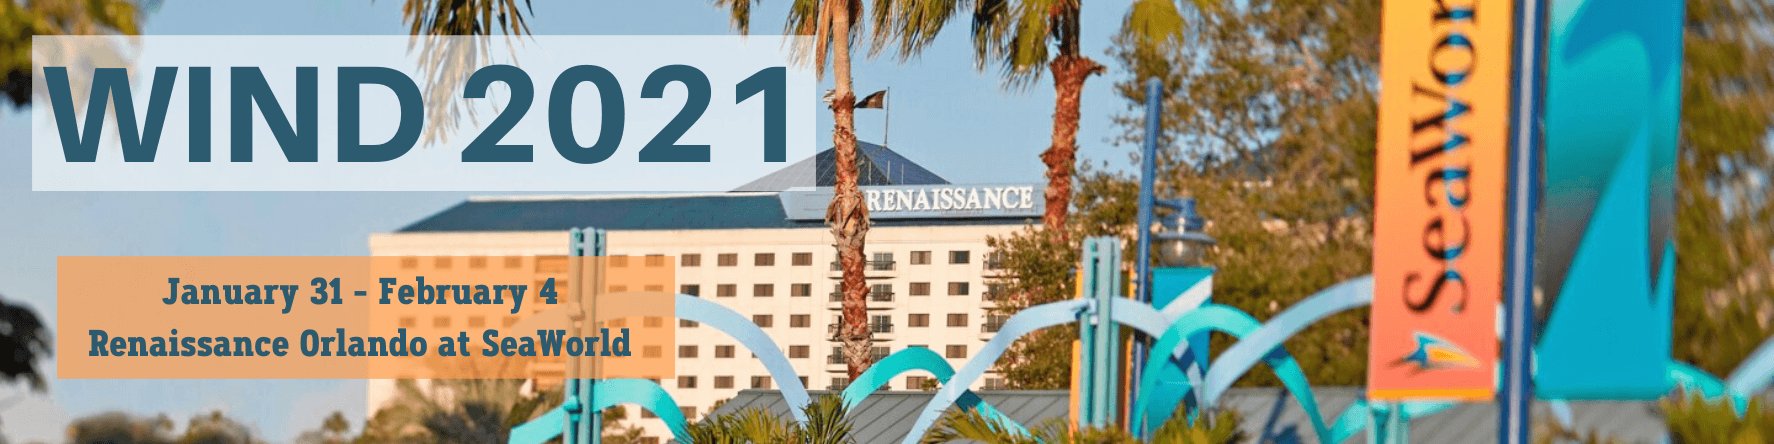 WIND 2021 Conference on Jan. 31-Feb.4